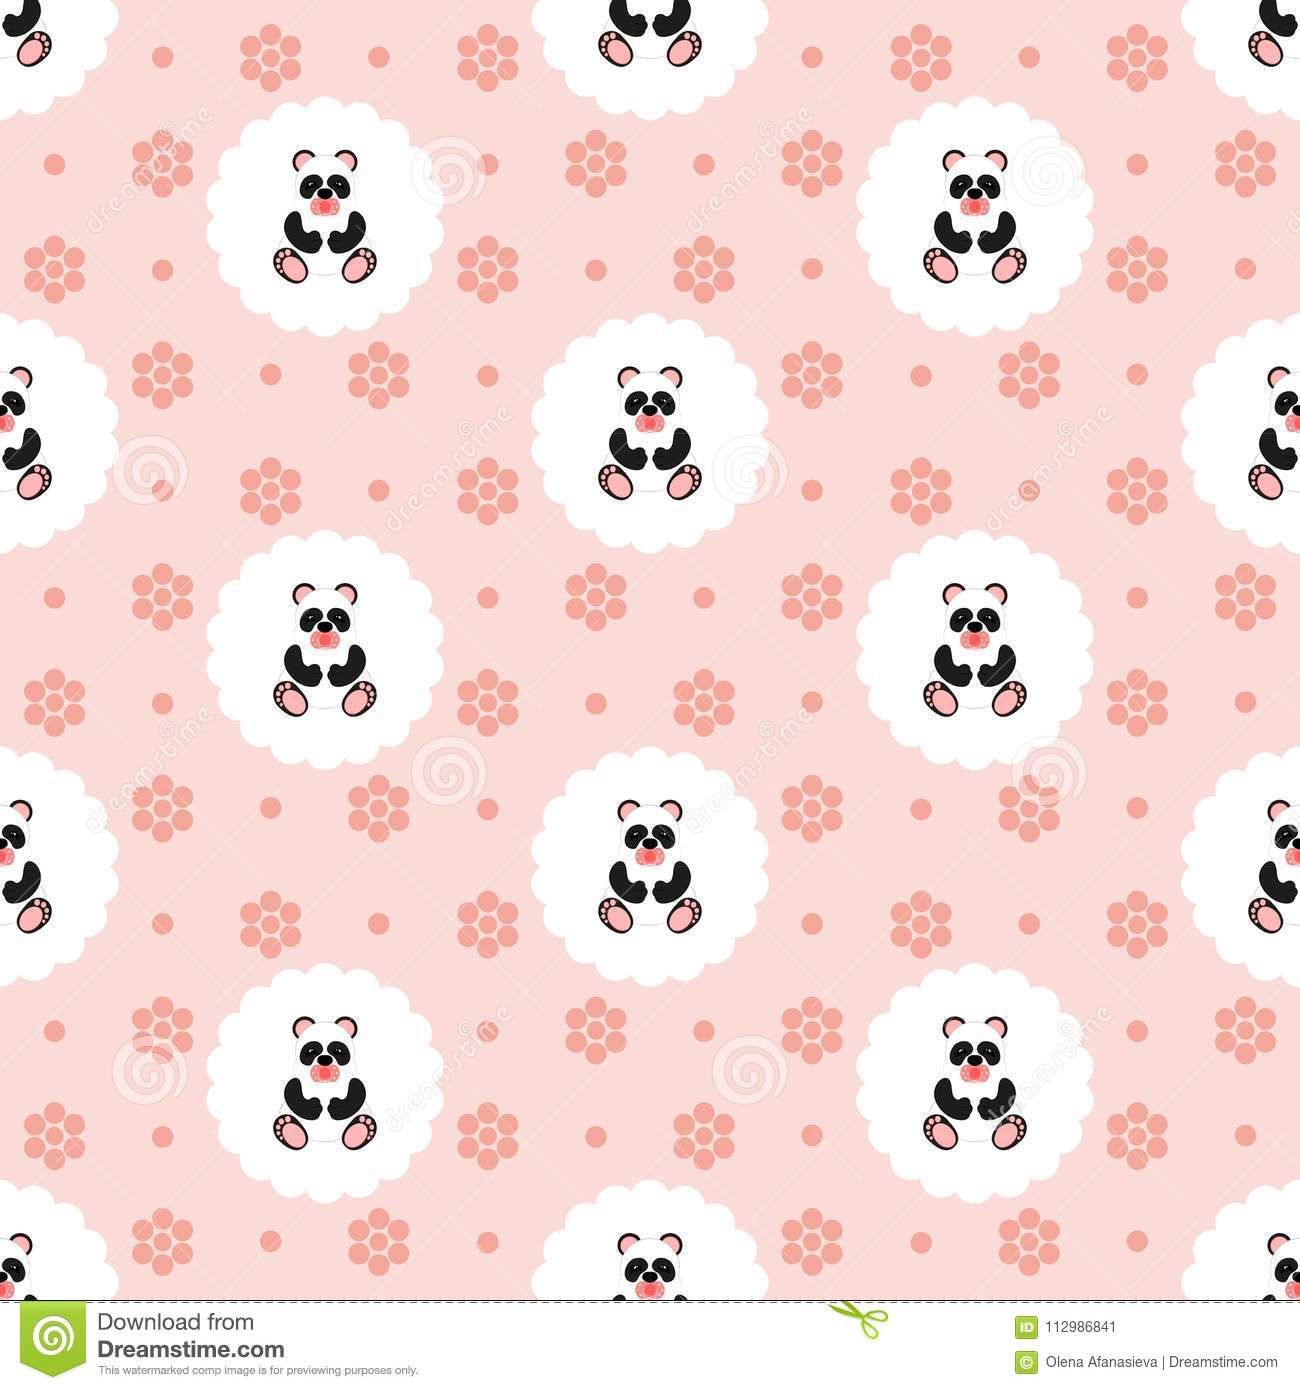 Panda baby. Pattern. Seamless vector illustration. Flat.